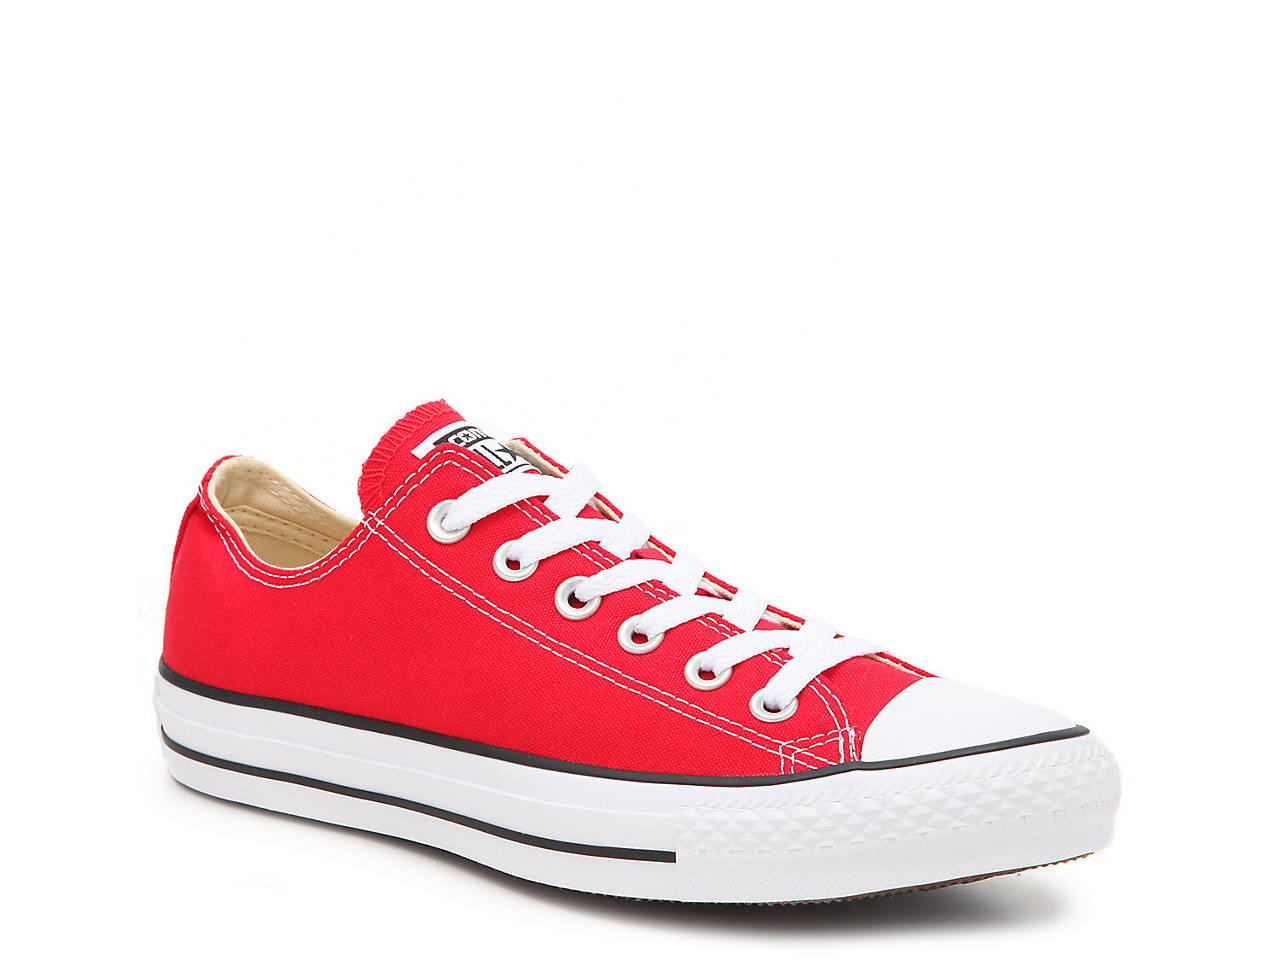 8c29ba591bc8 Converse Chuck Taylor All Star Sneaker - Women s Women s Shoes